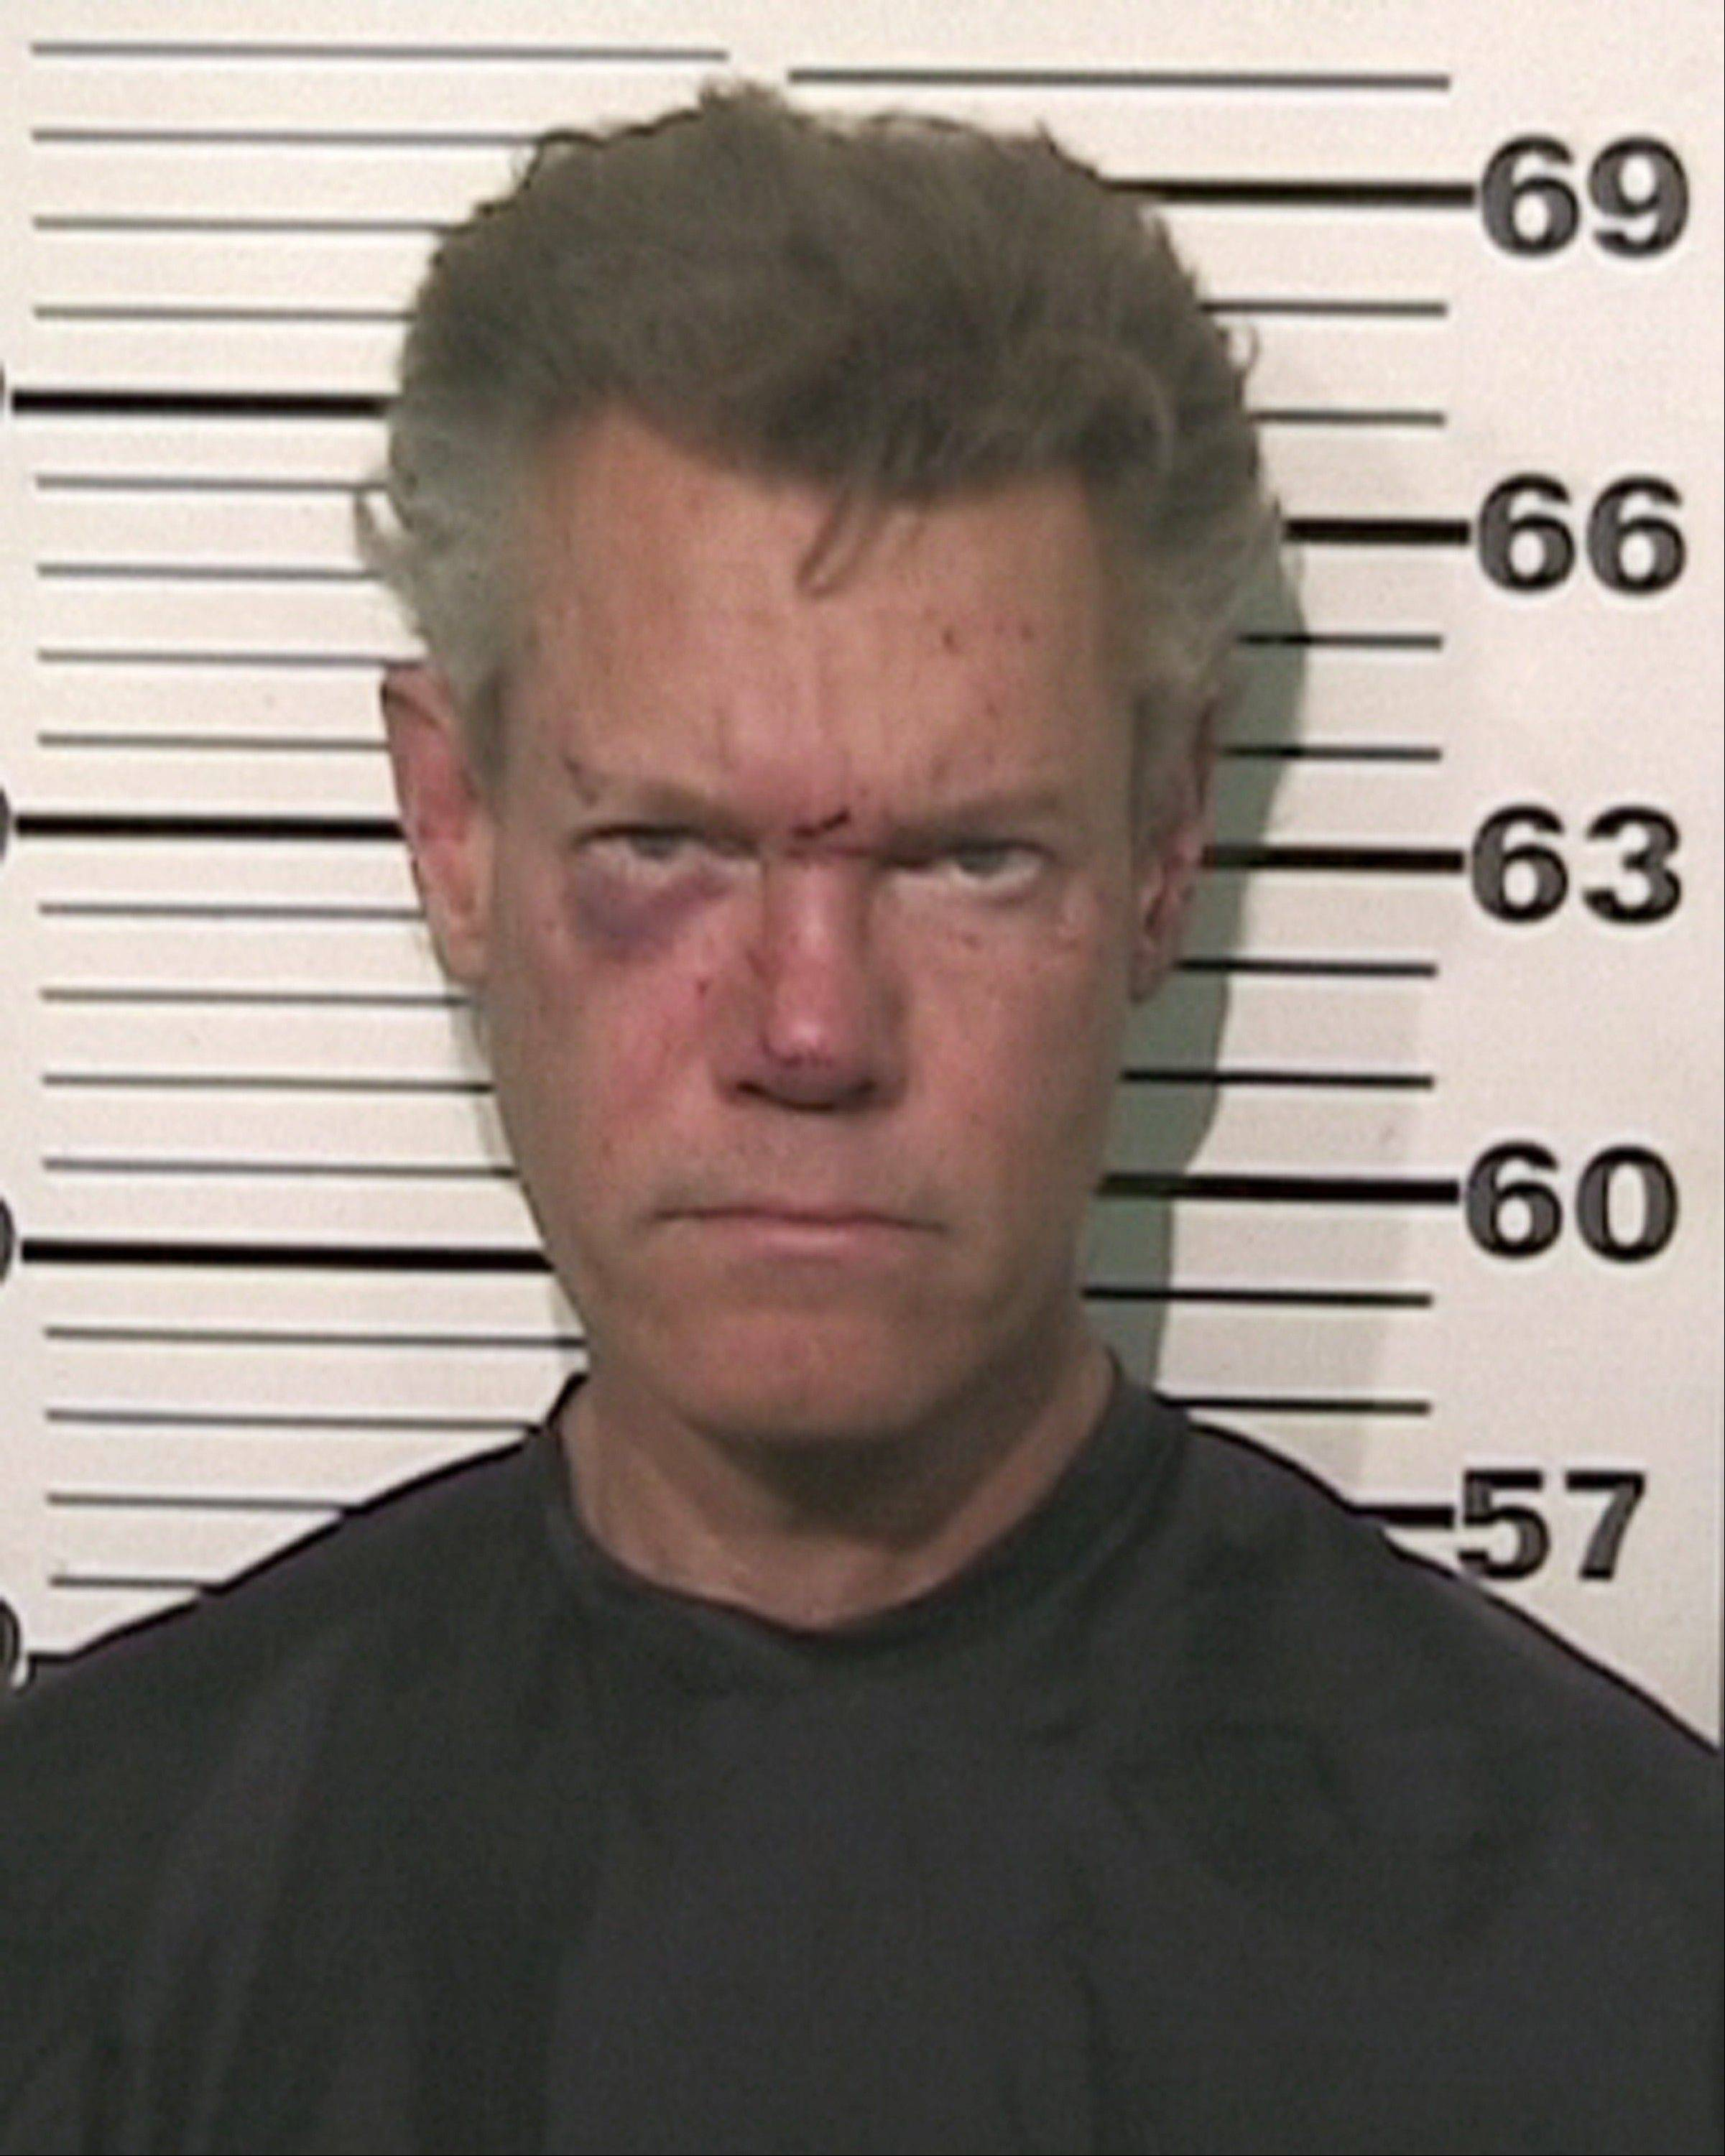 Country singer Randy Travis, who has been charged with driving while intoxicated, was released on $21,500 bond.